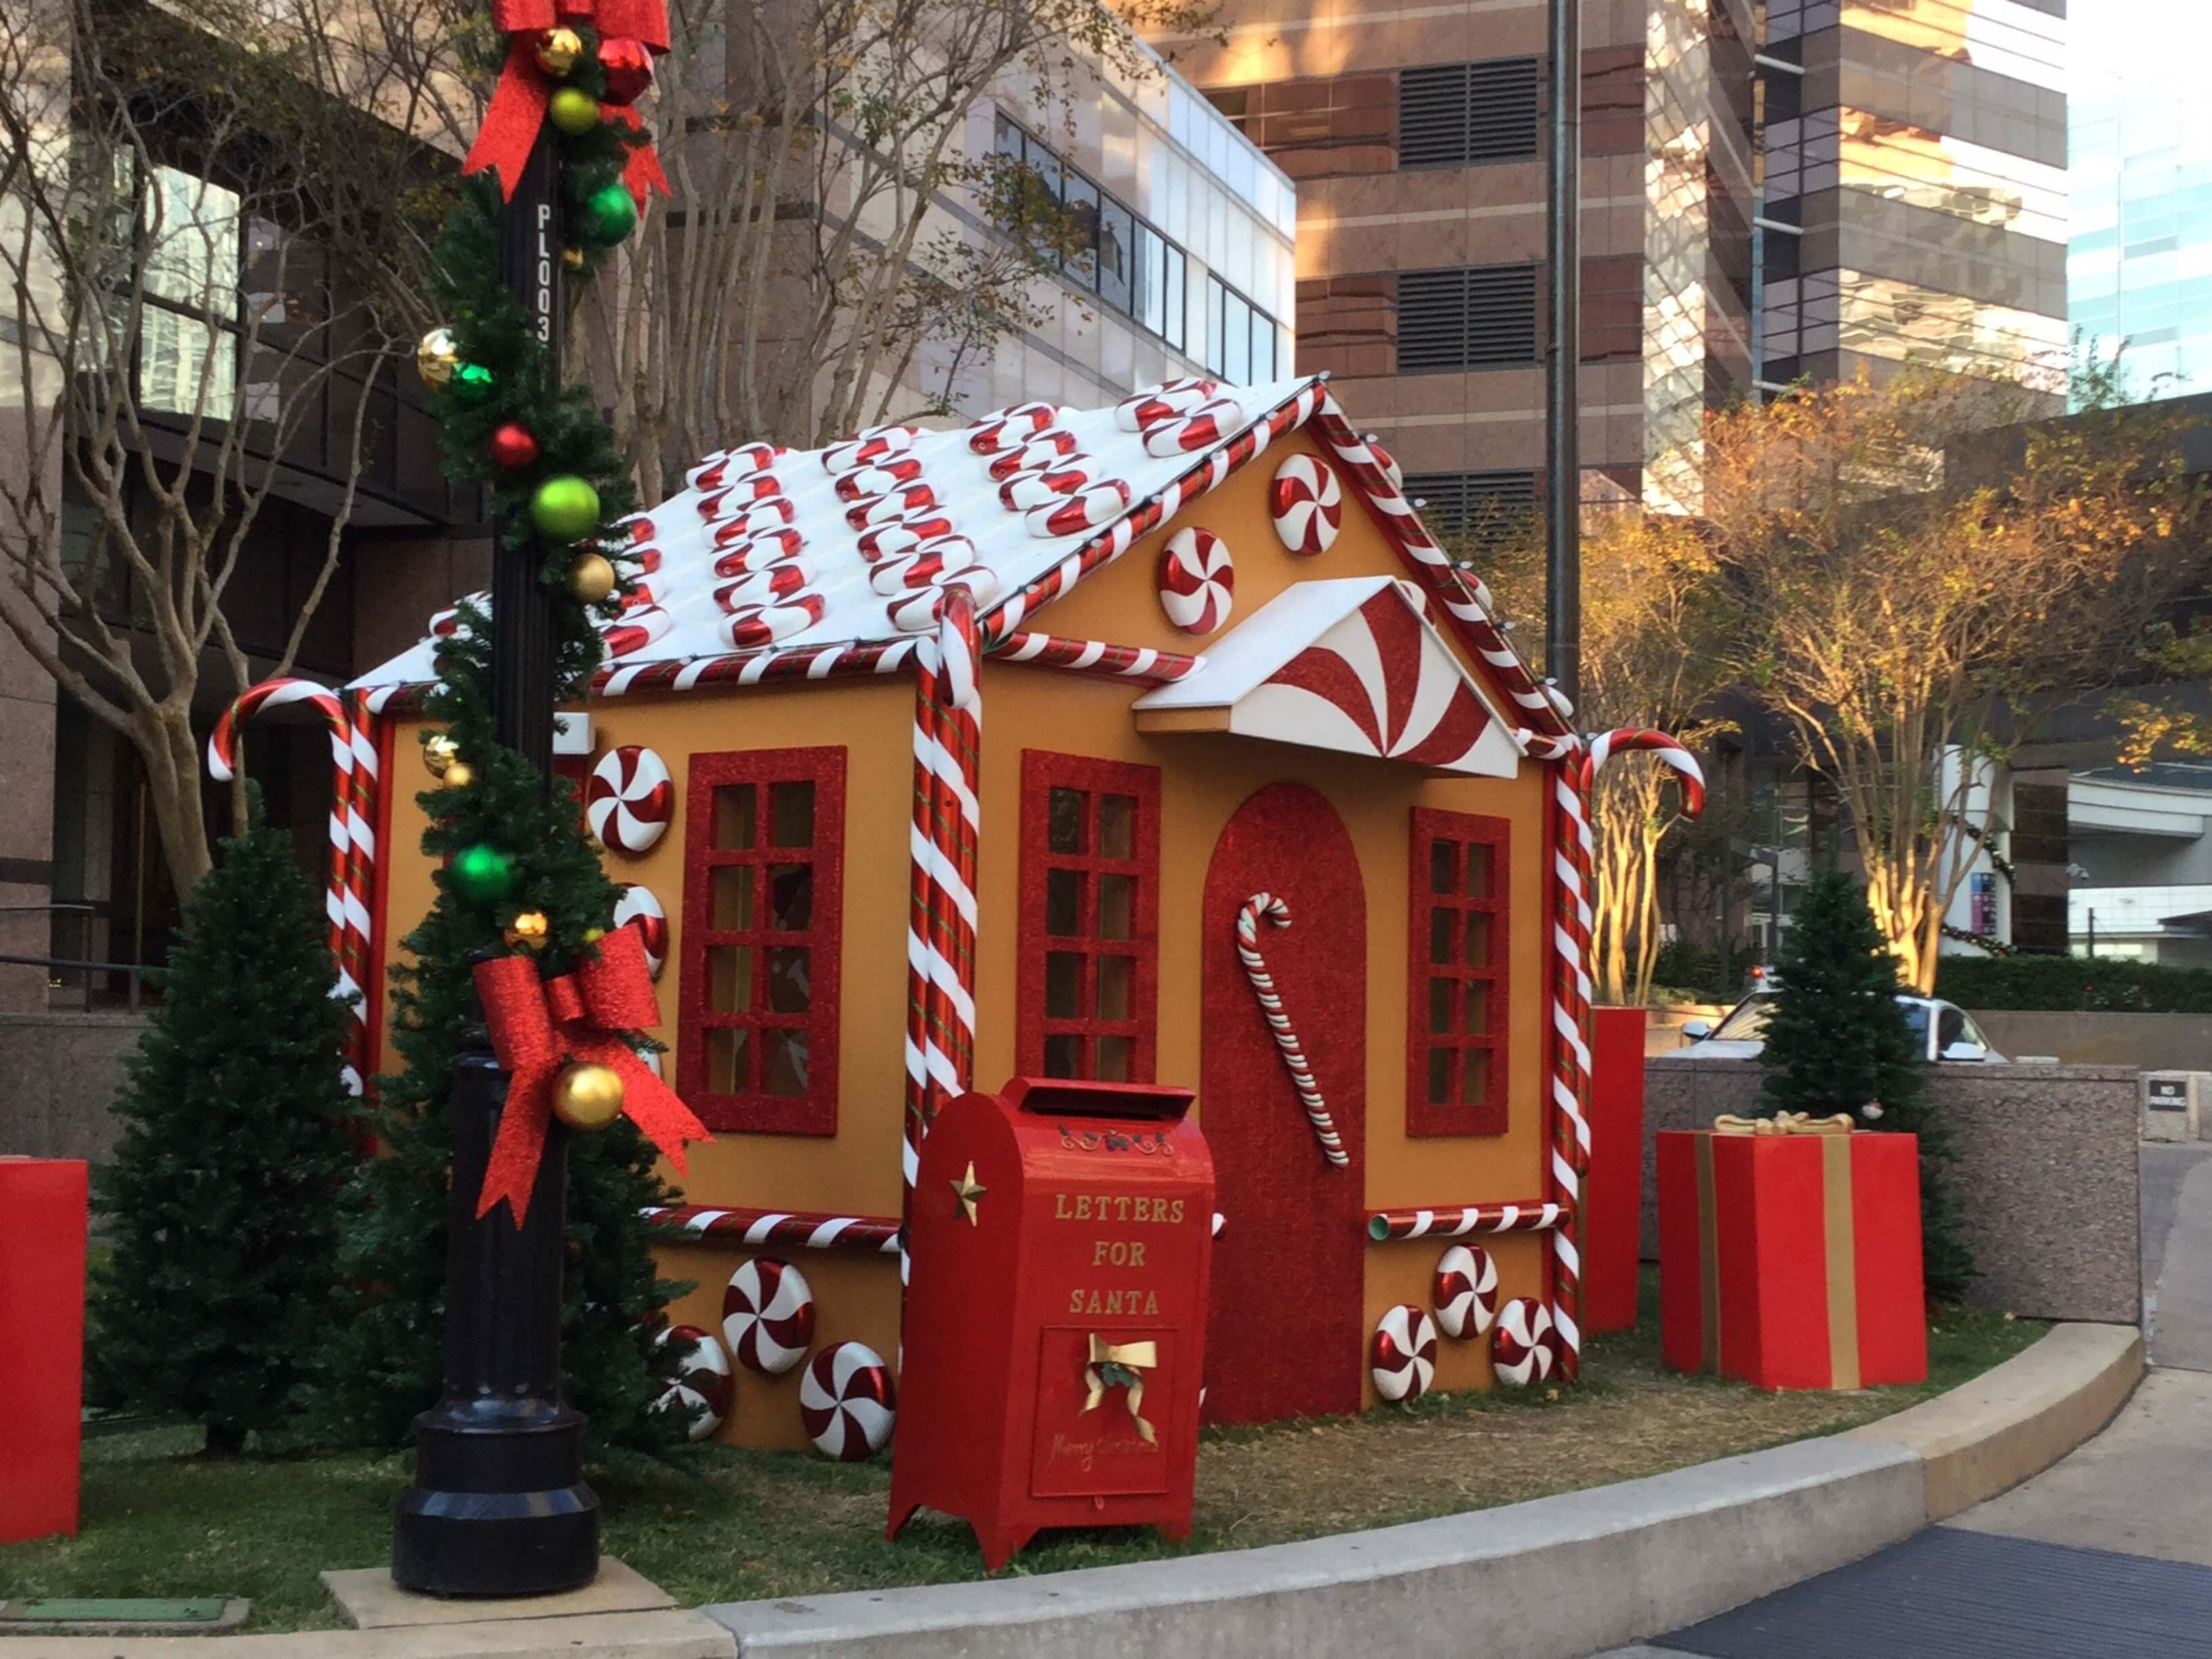 Tmc Christmas Commercial 2020 The Texas Medical Center Gets Into the Holiday Spirit   TMC News